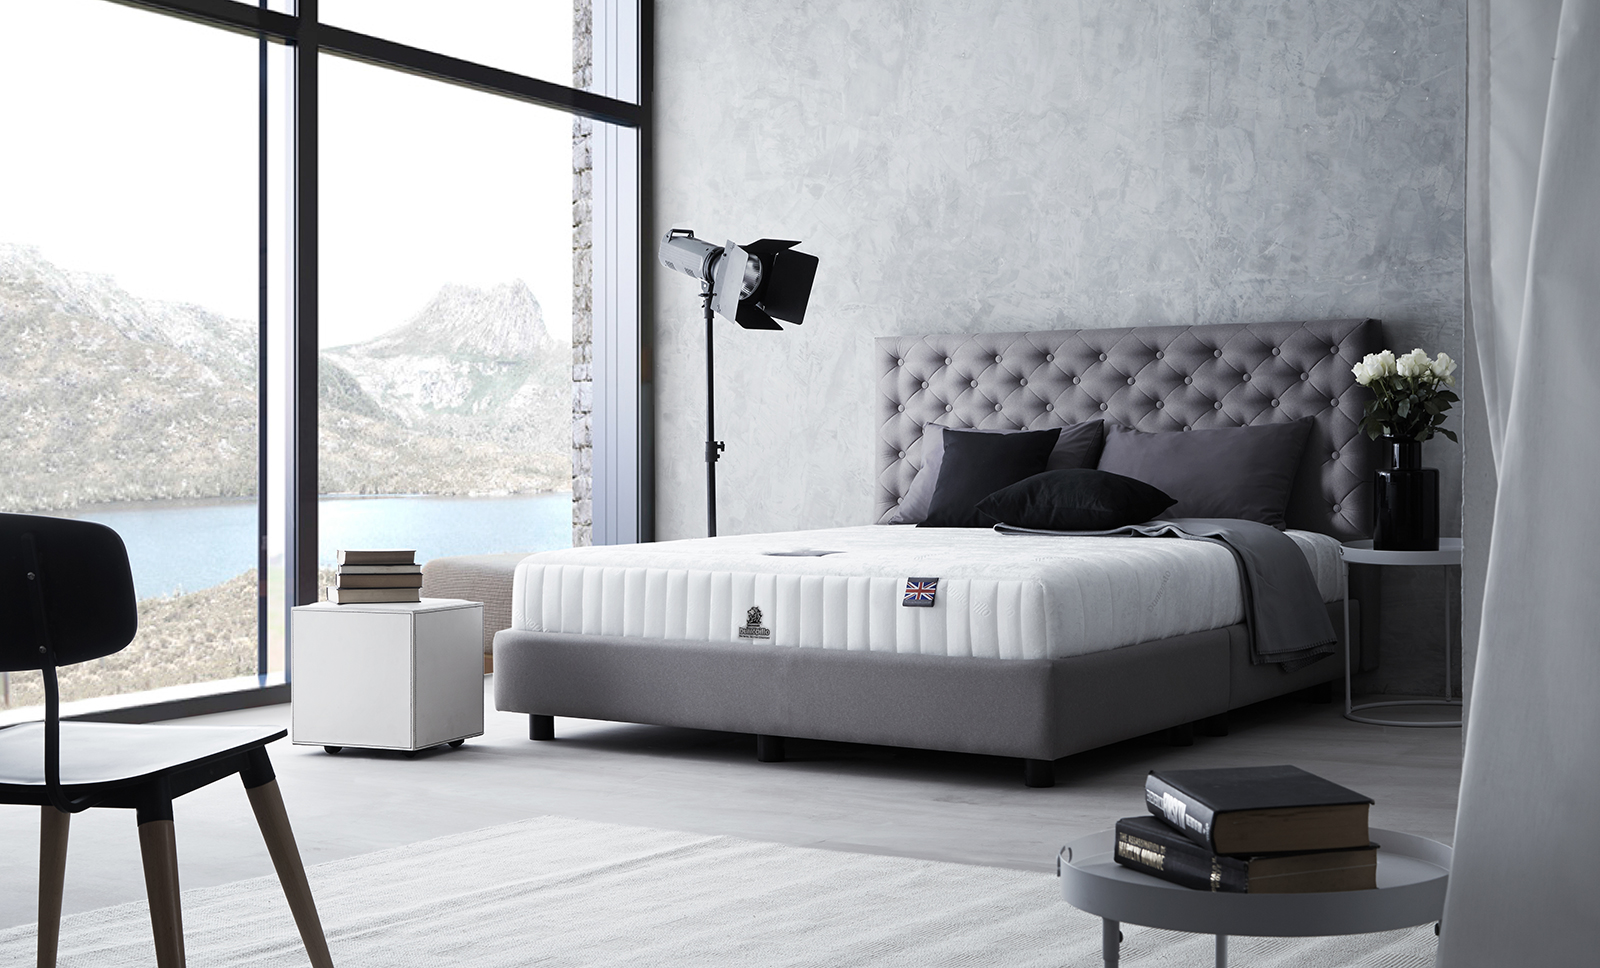 What Bedding Should I Use With My Dunlopillo Mattress?